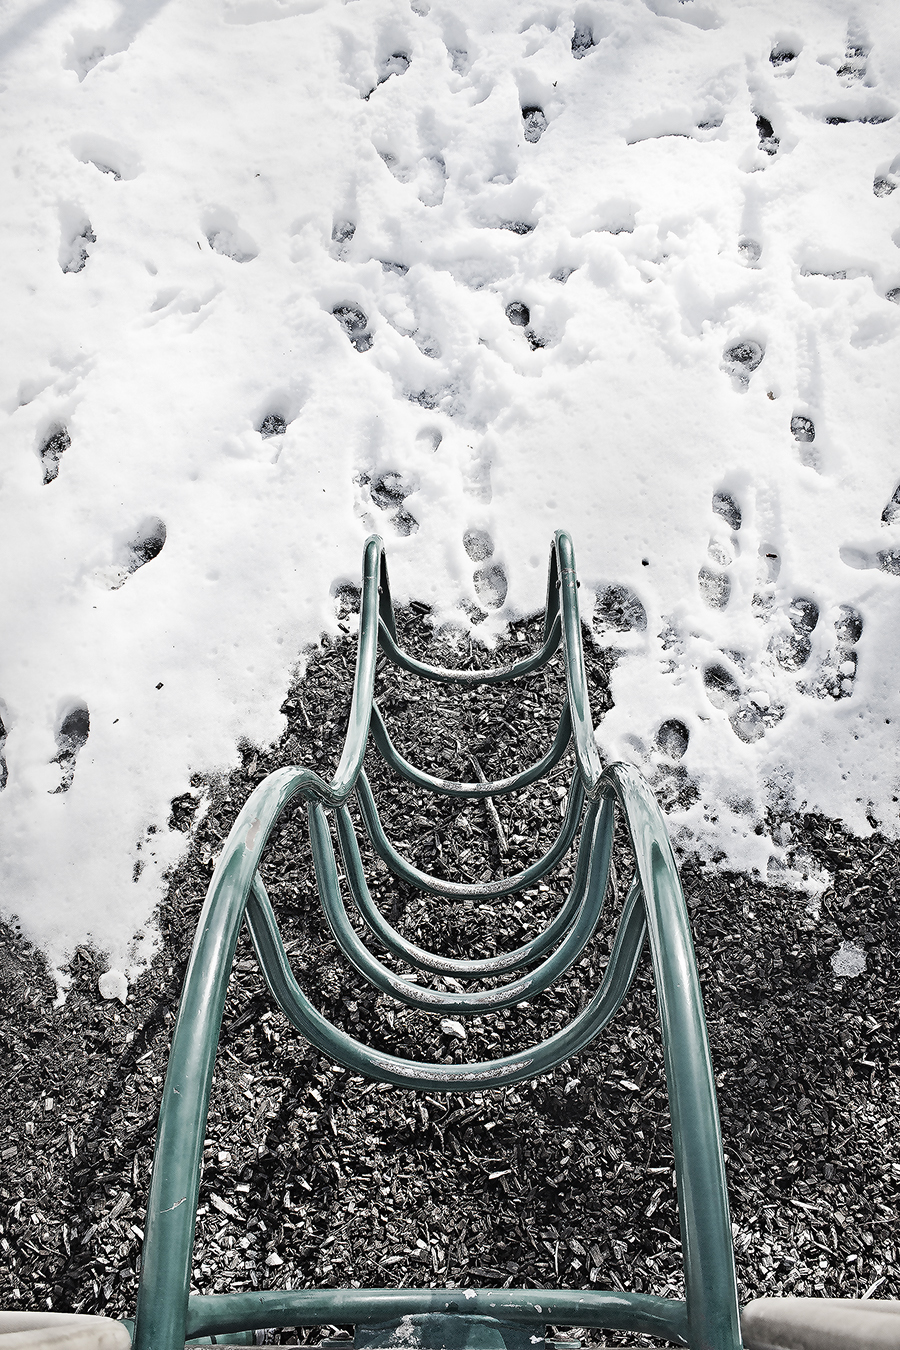 playground toy with snow